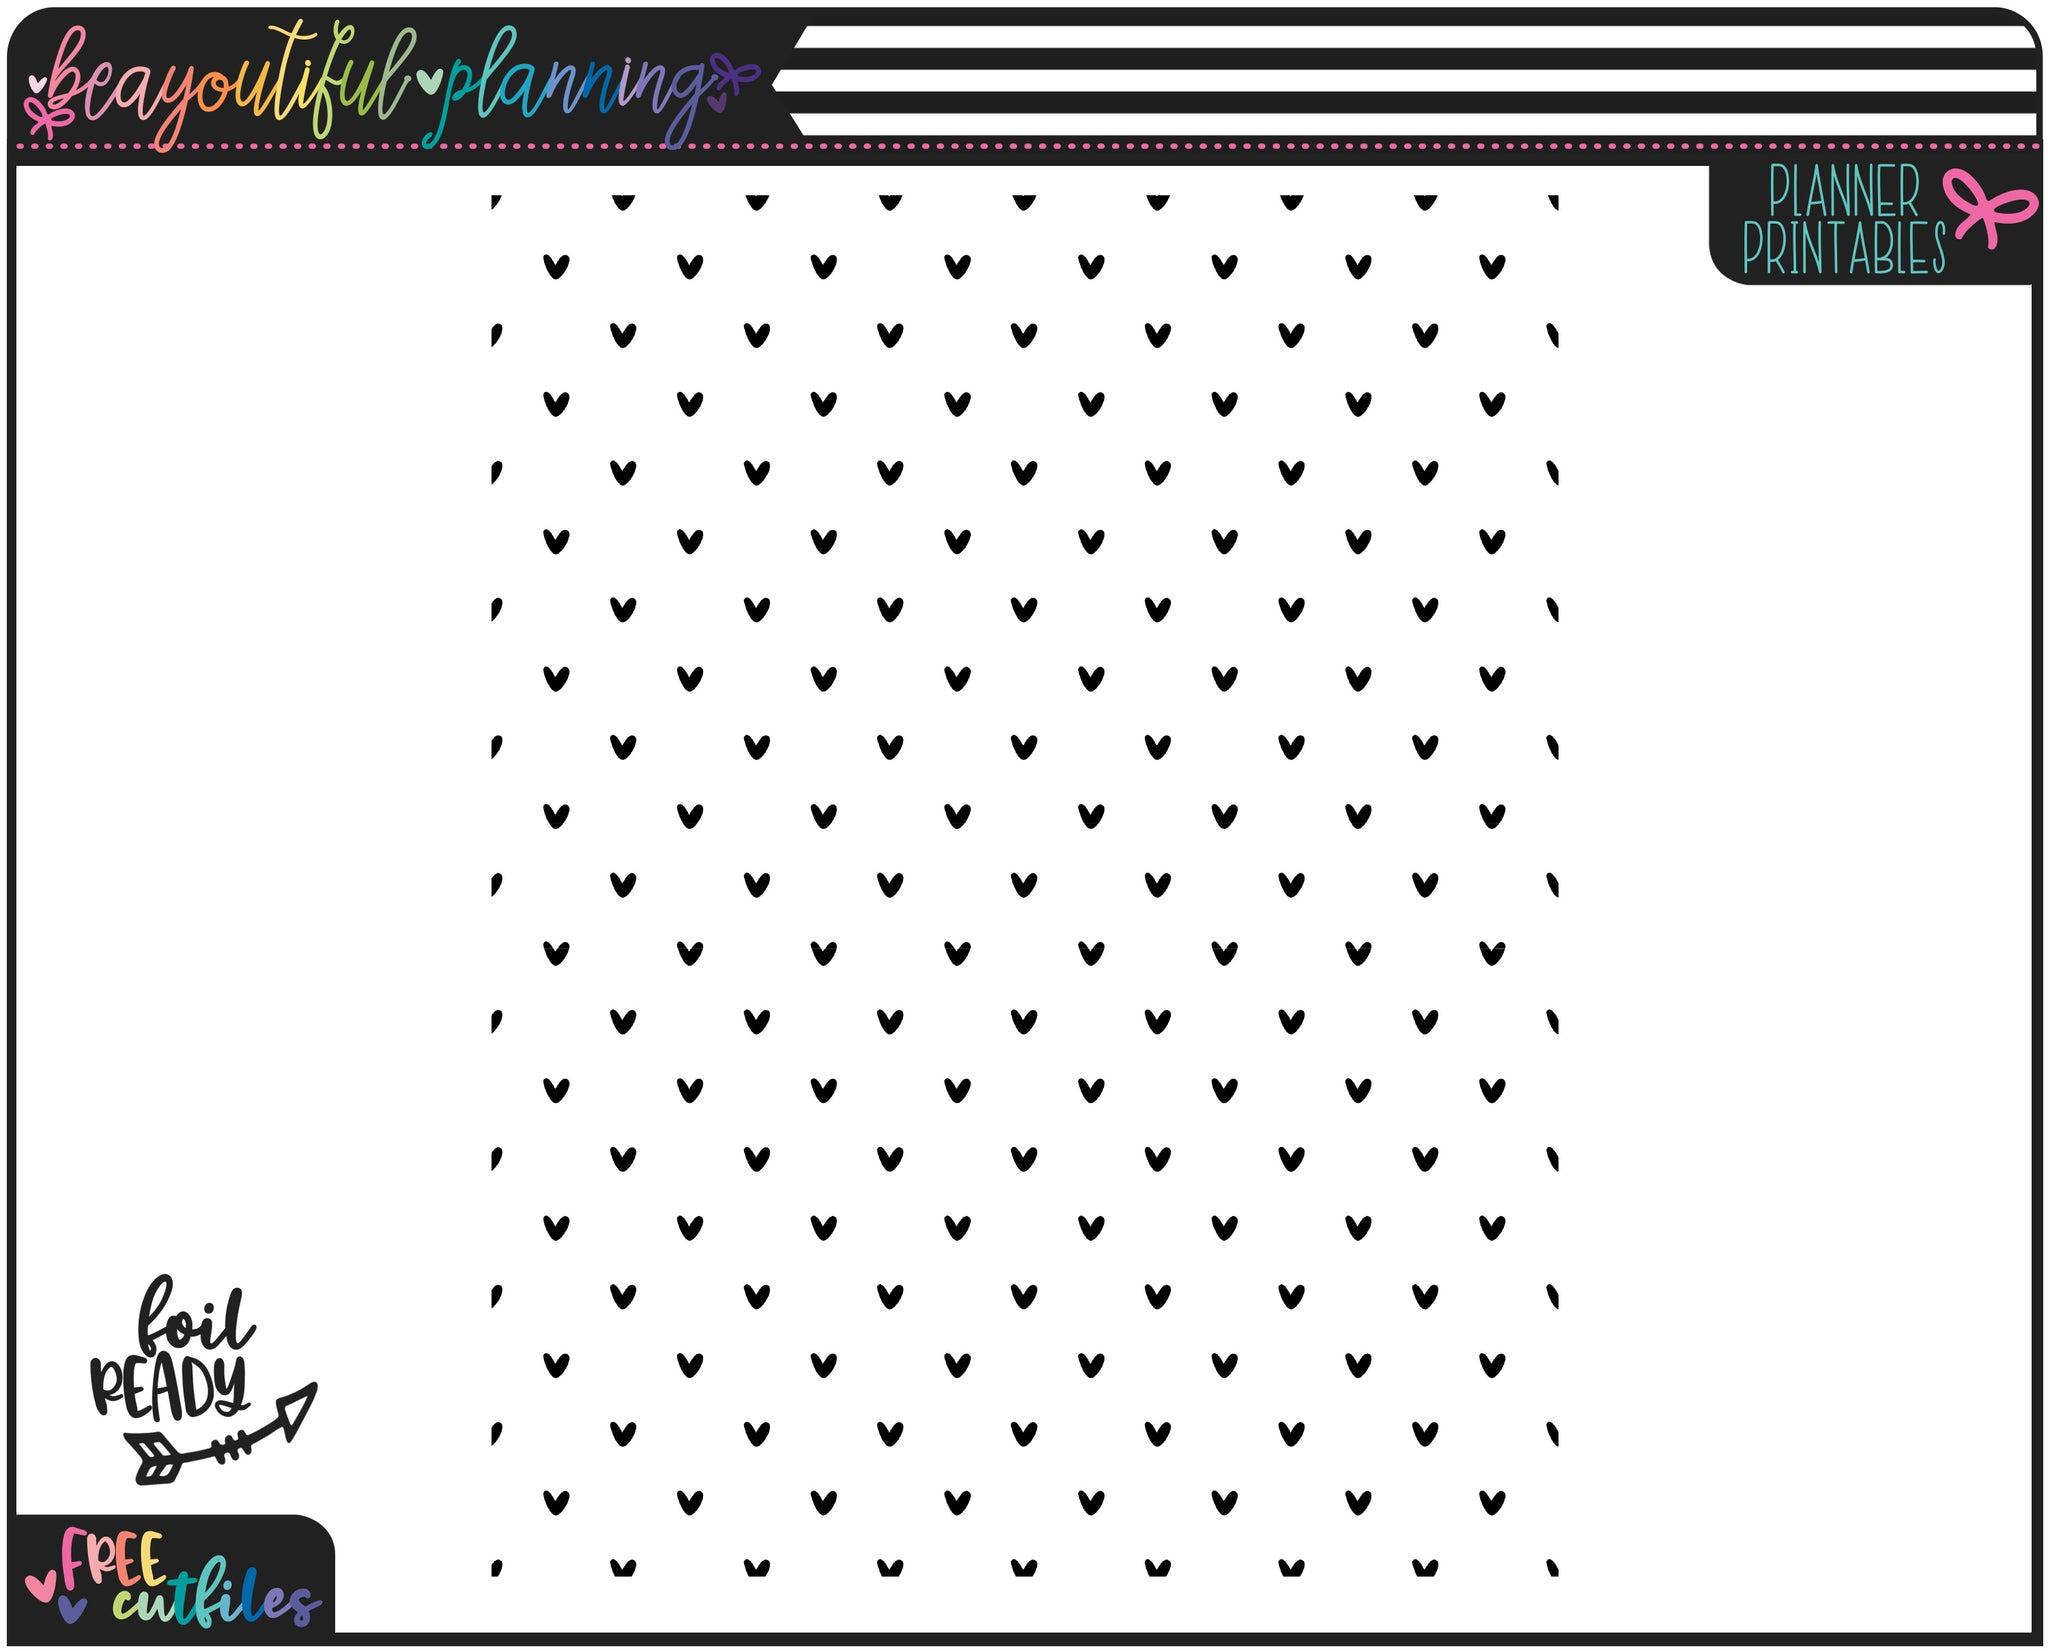 Hearts Planner Printable Vellum or Acetate